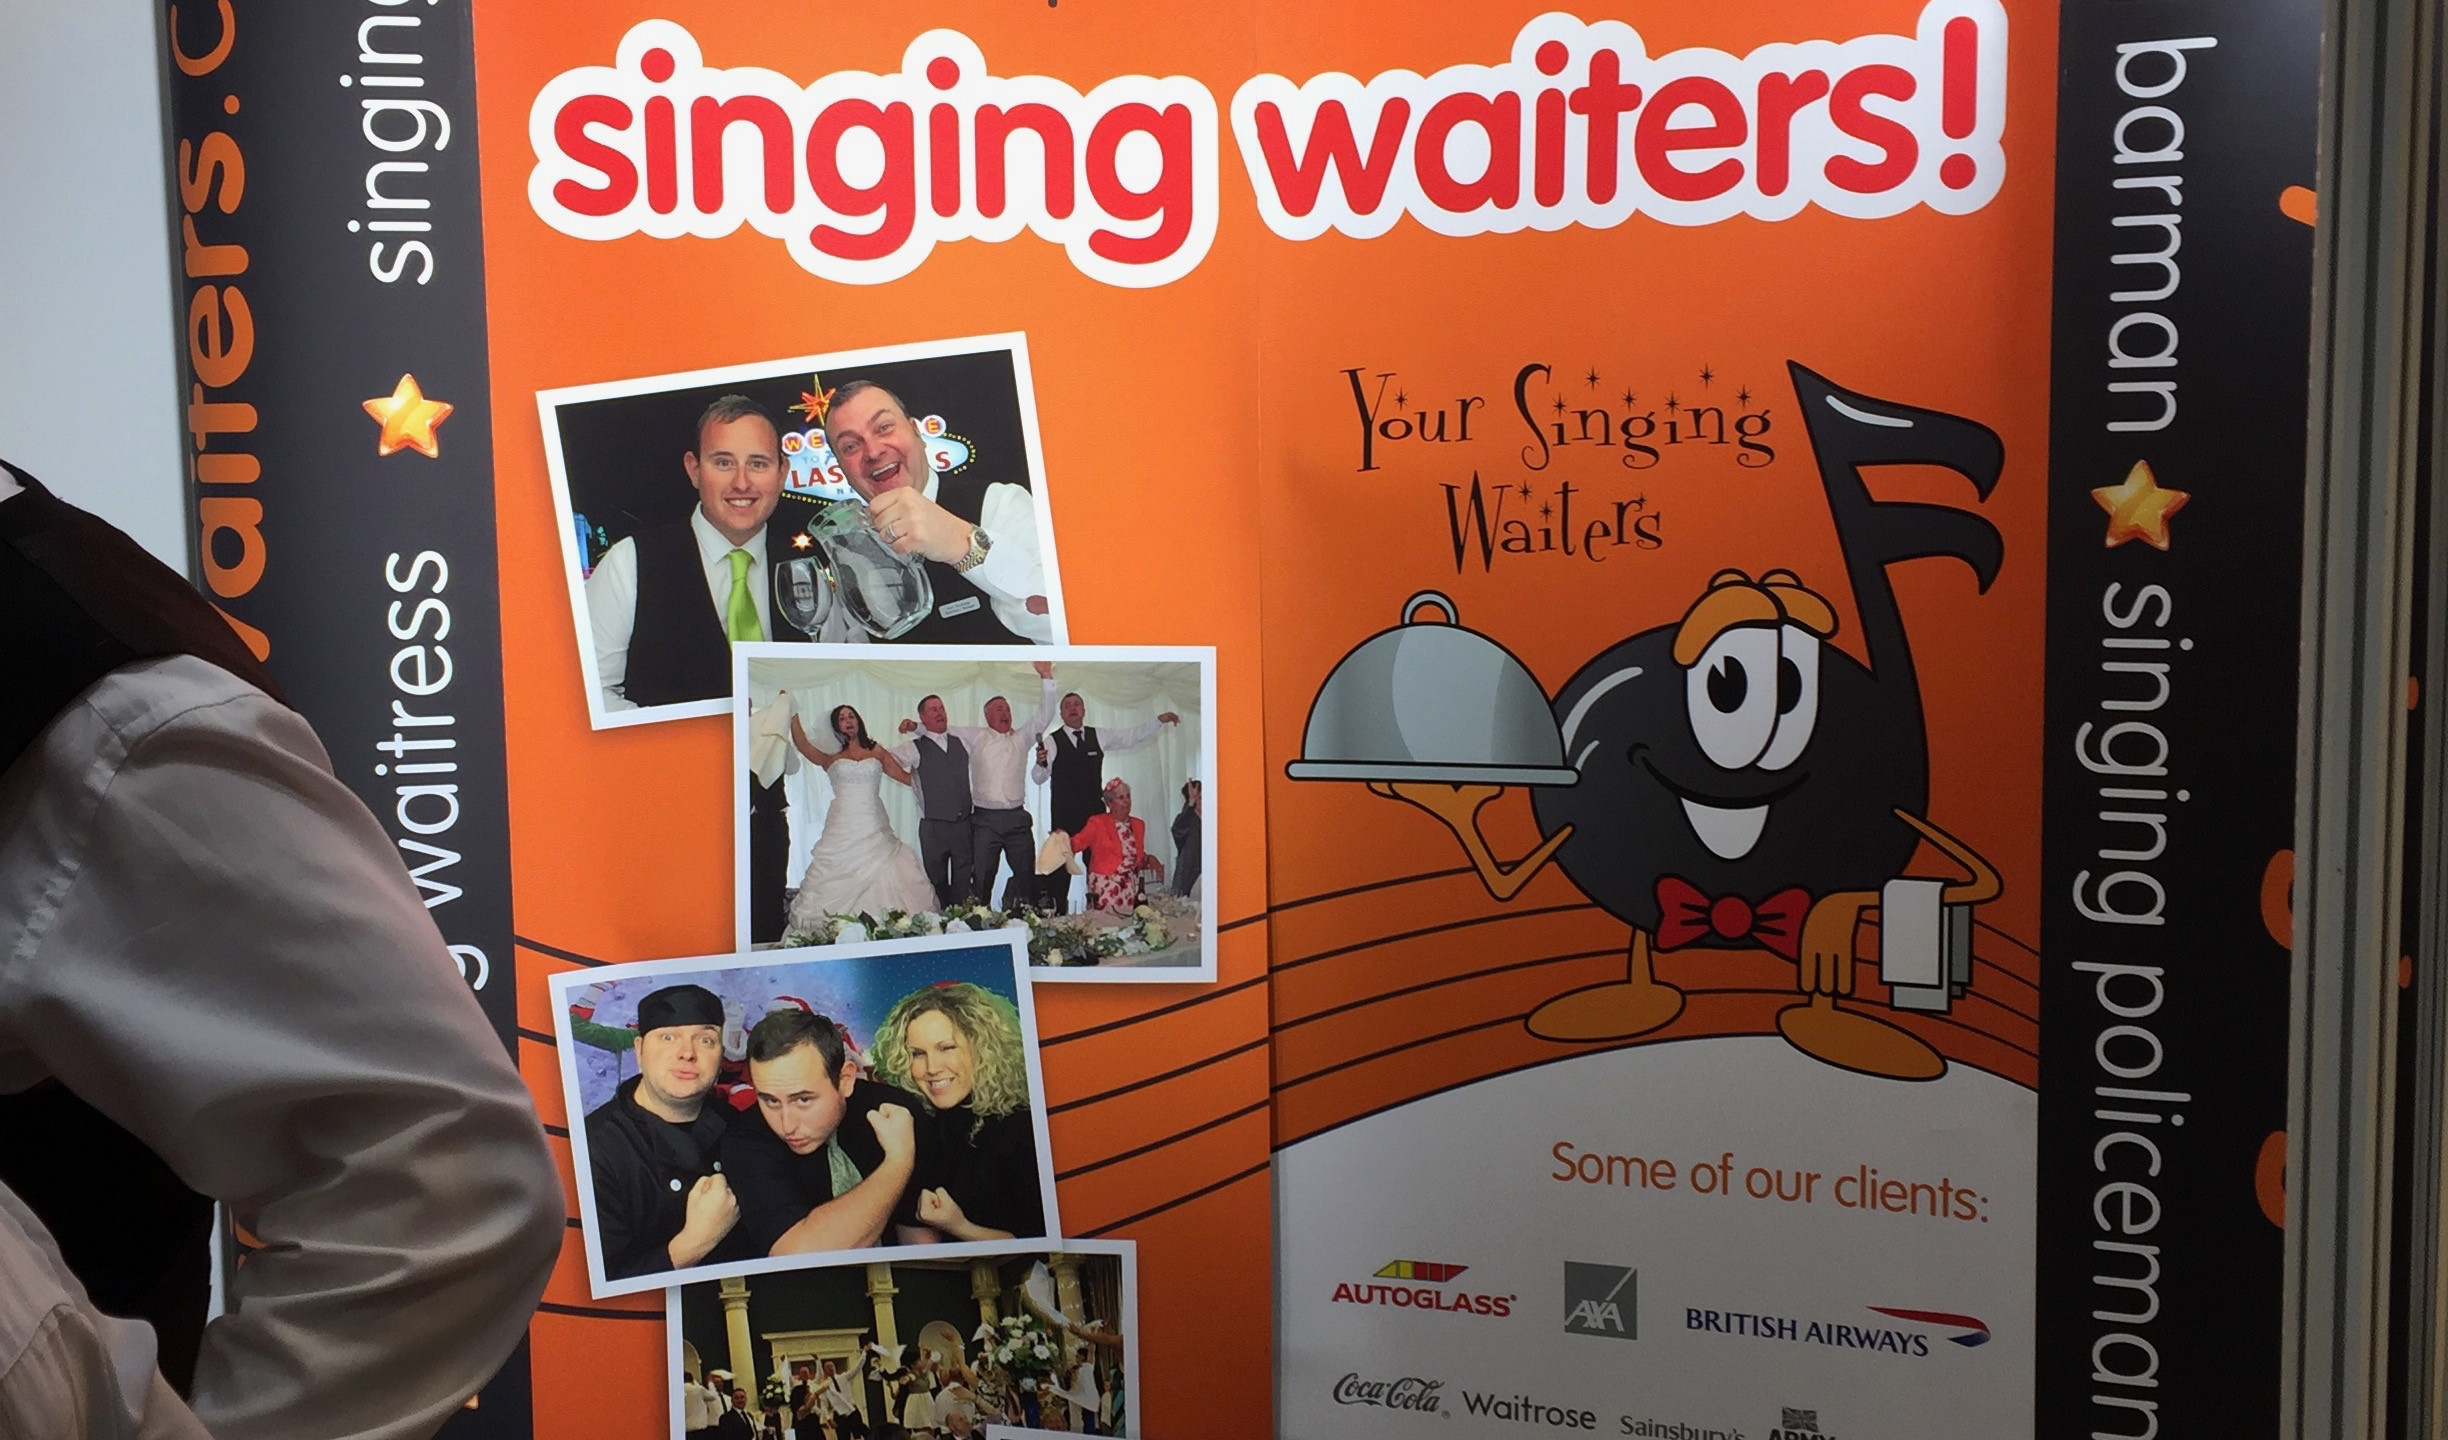 The singing waiters were getting A LOT of female attention